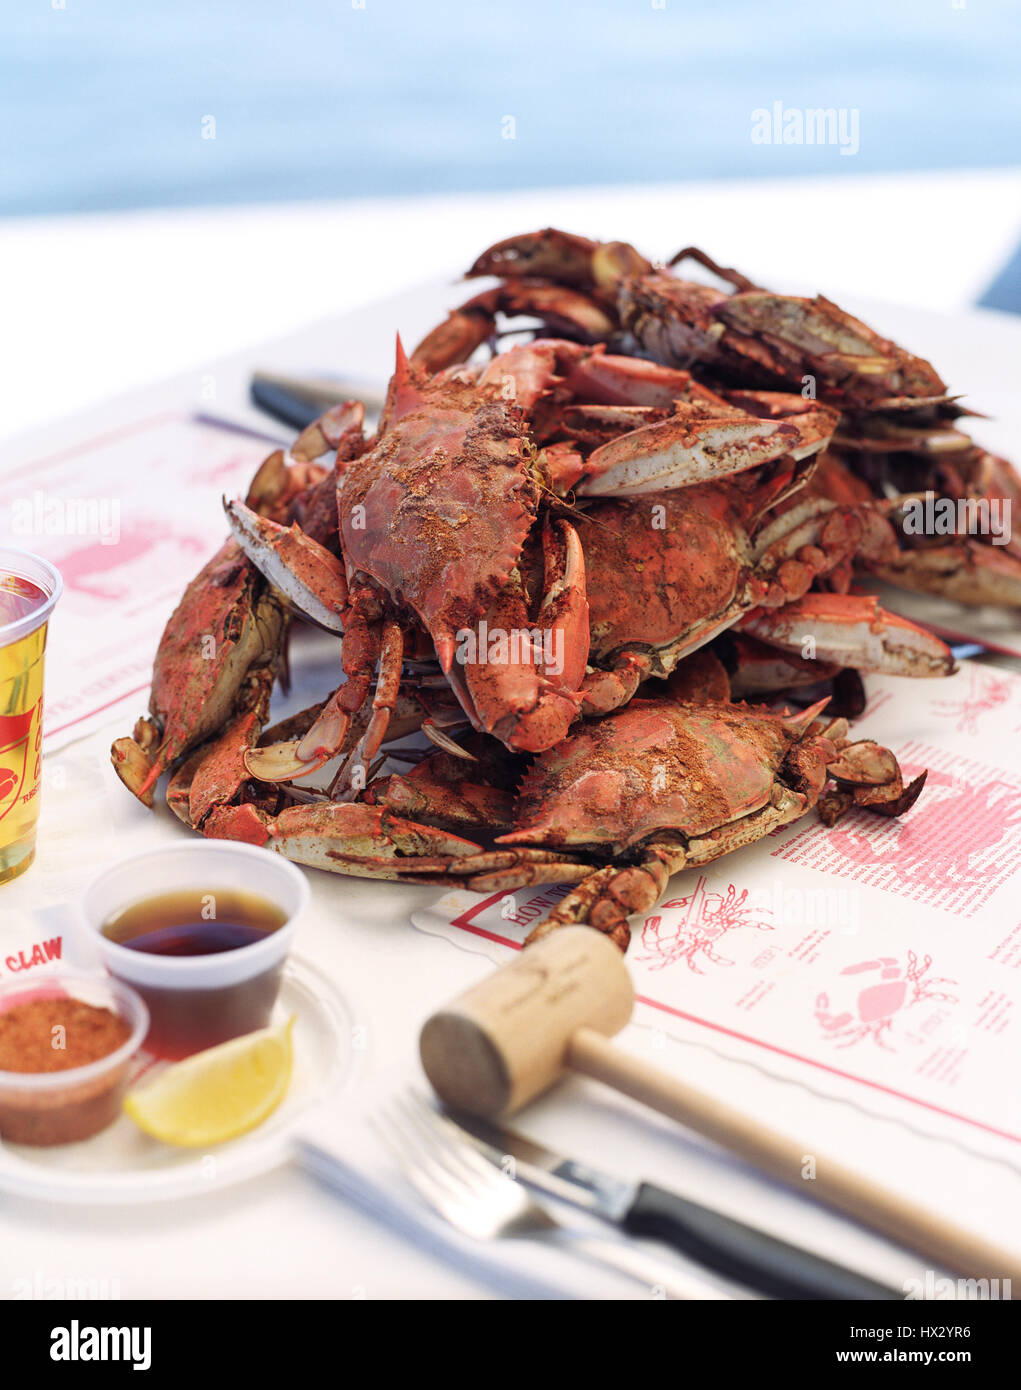 Maryland Blue Crabs at the Crab Claw Restaurant at the Inner Harbor of St. Michaels,Maryland, USA, - Stock Image